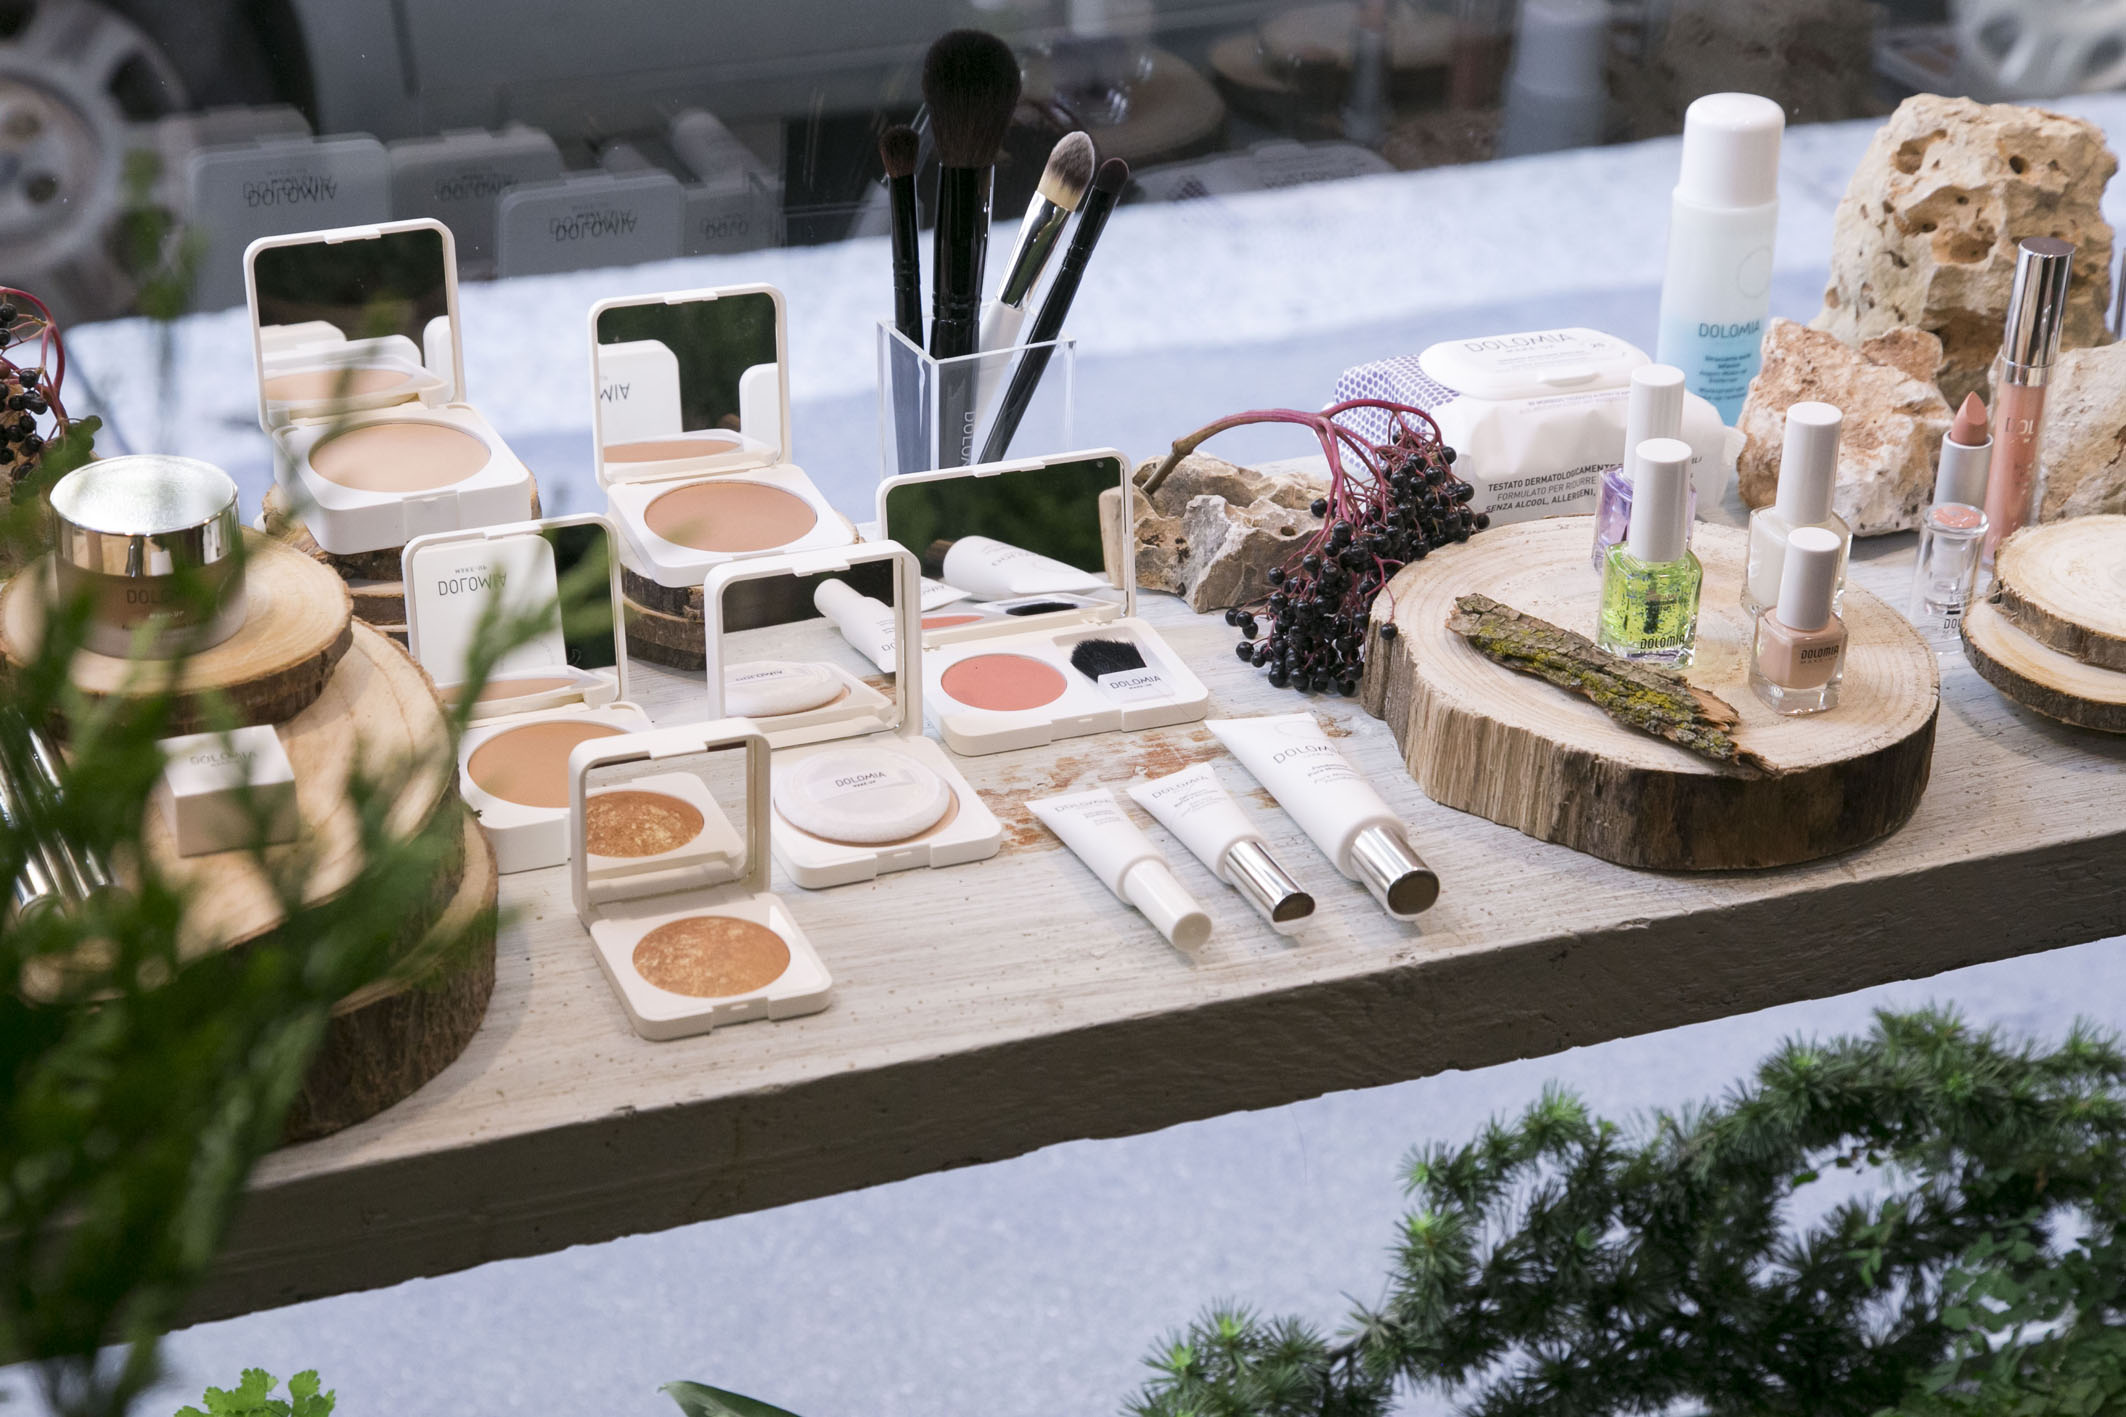 Dolomia Skincare new launch set styling project @ Fioraio Bianchi 08